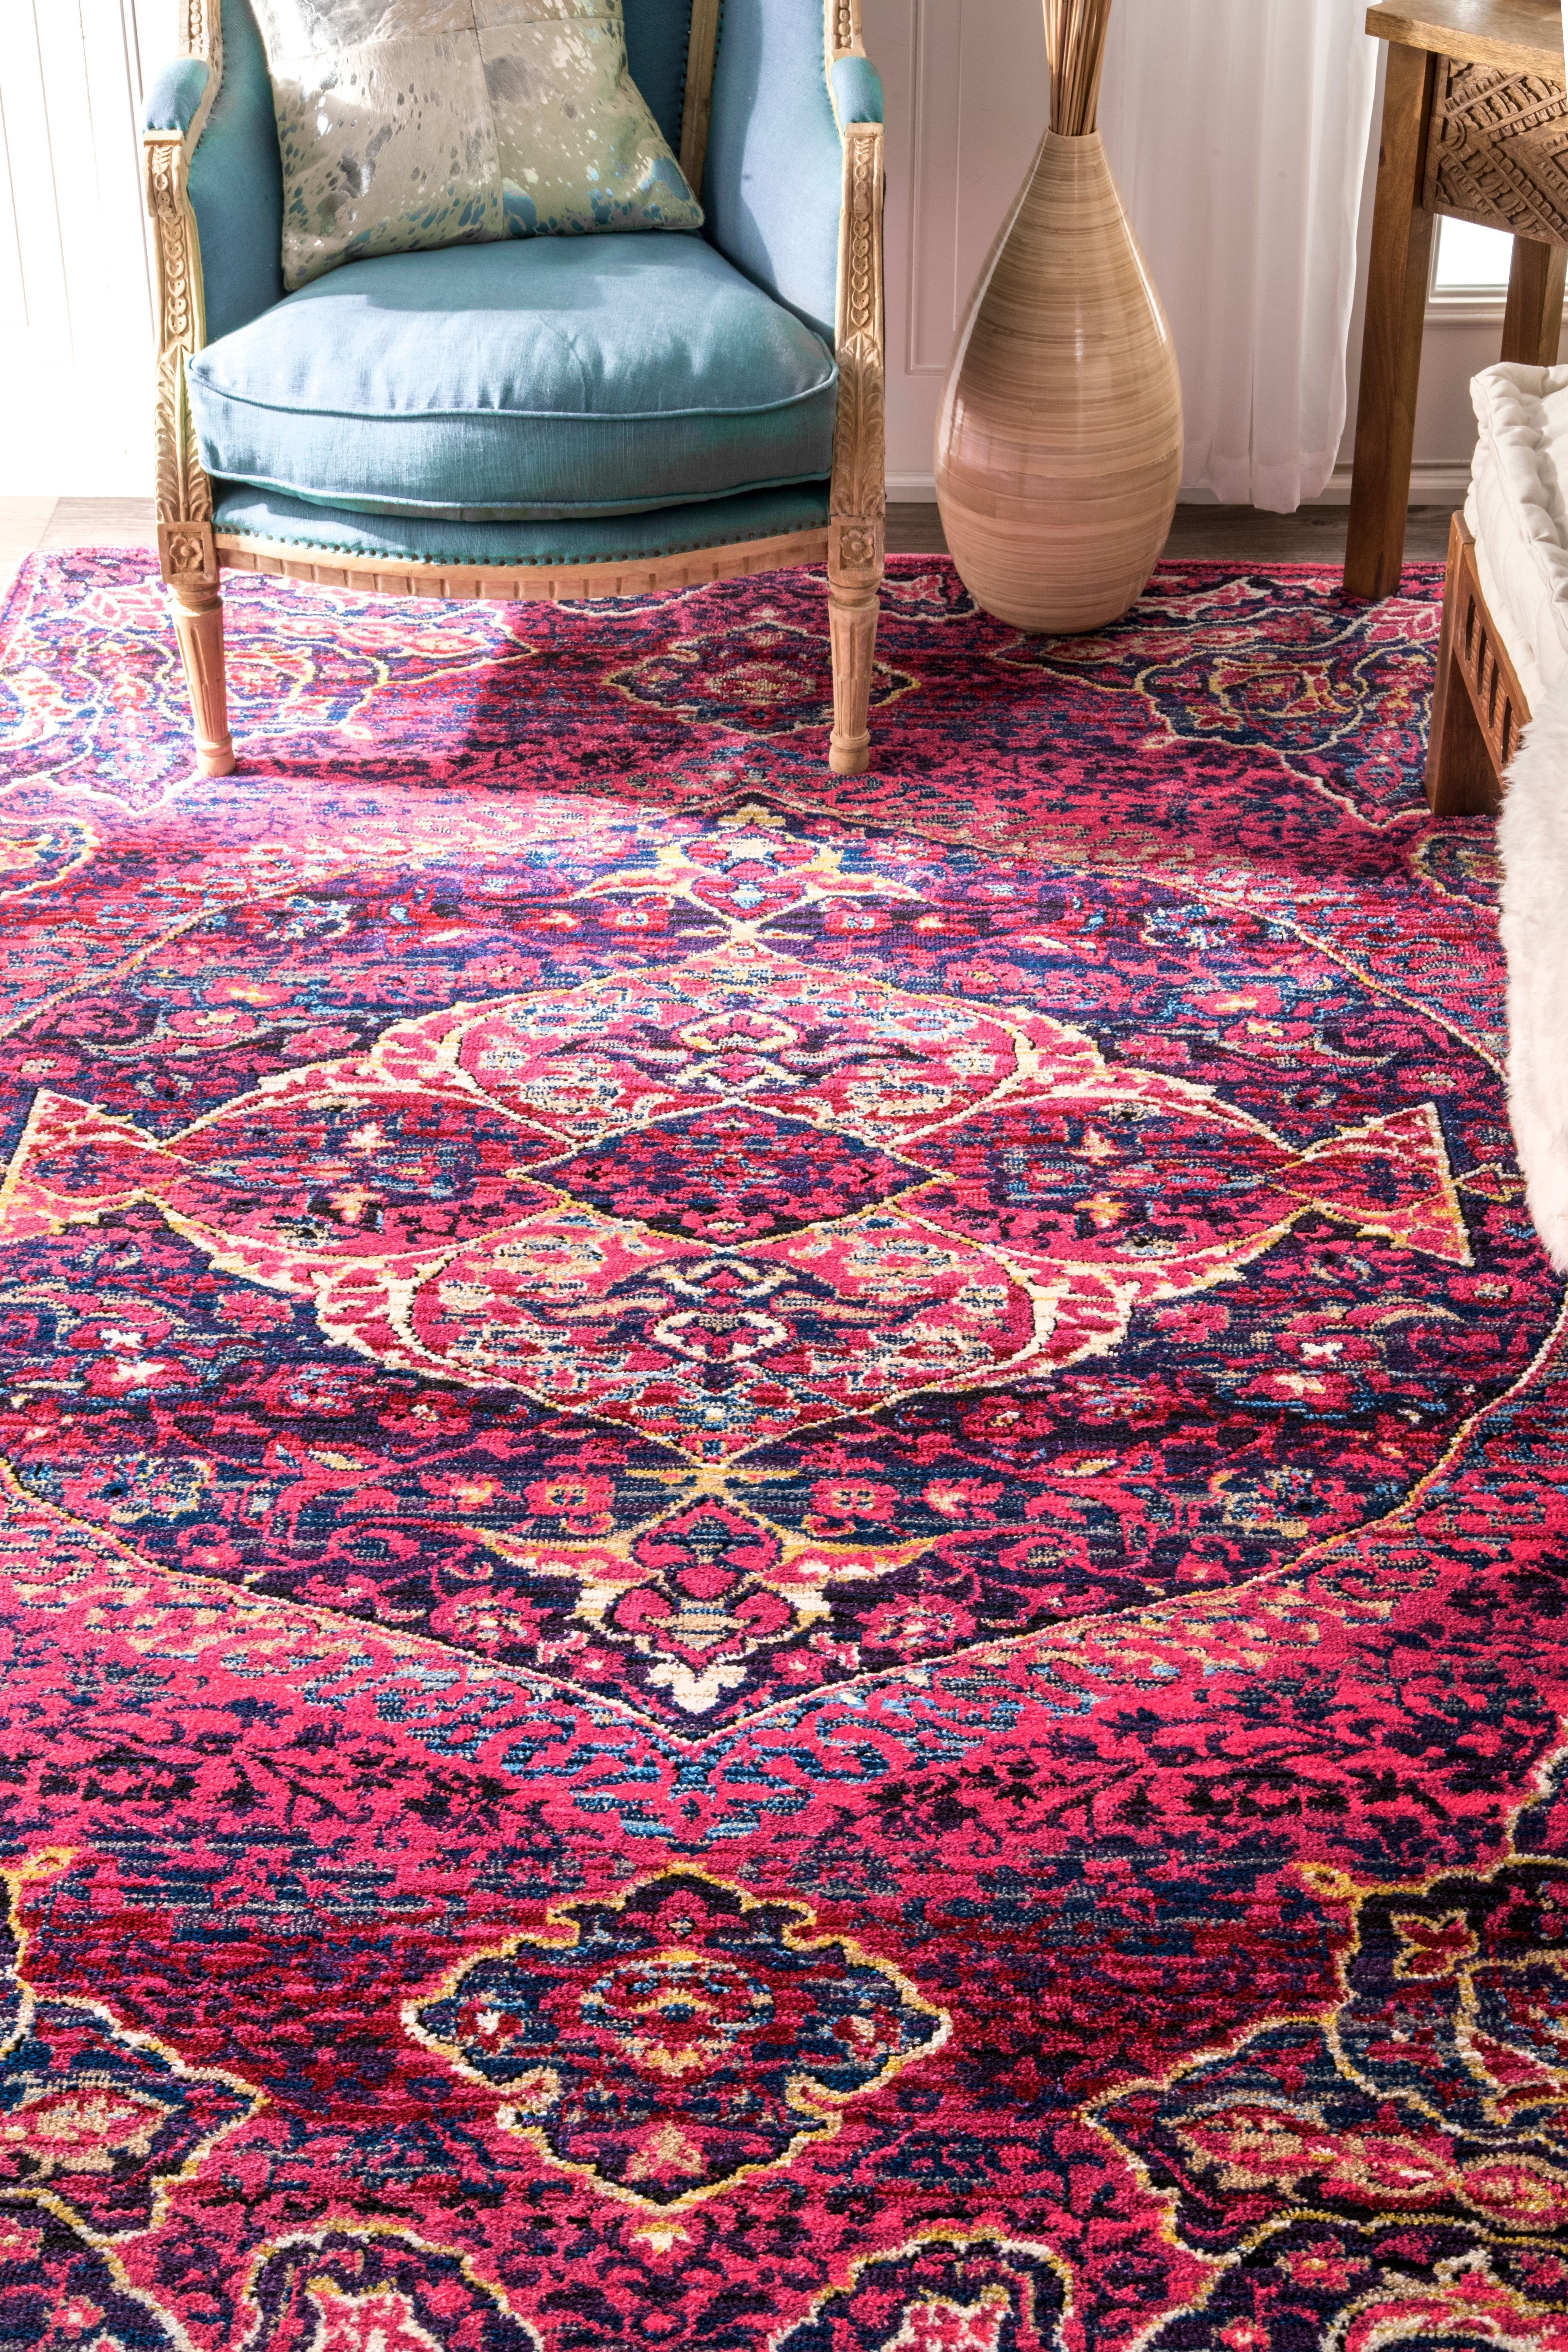 105 50 With Pad Nook Rugs Usa Fantasy Frilly Oriental Emblem Rug Rugs Area Rugs Braided Area Rugs